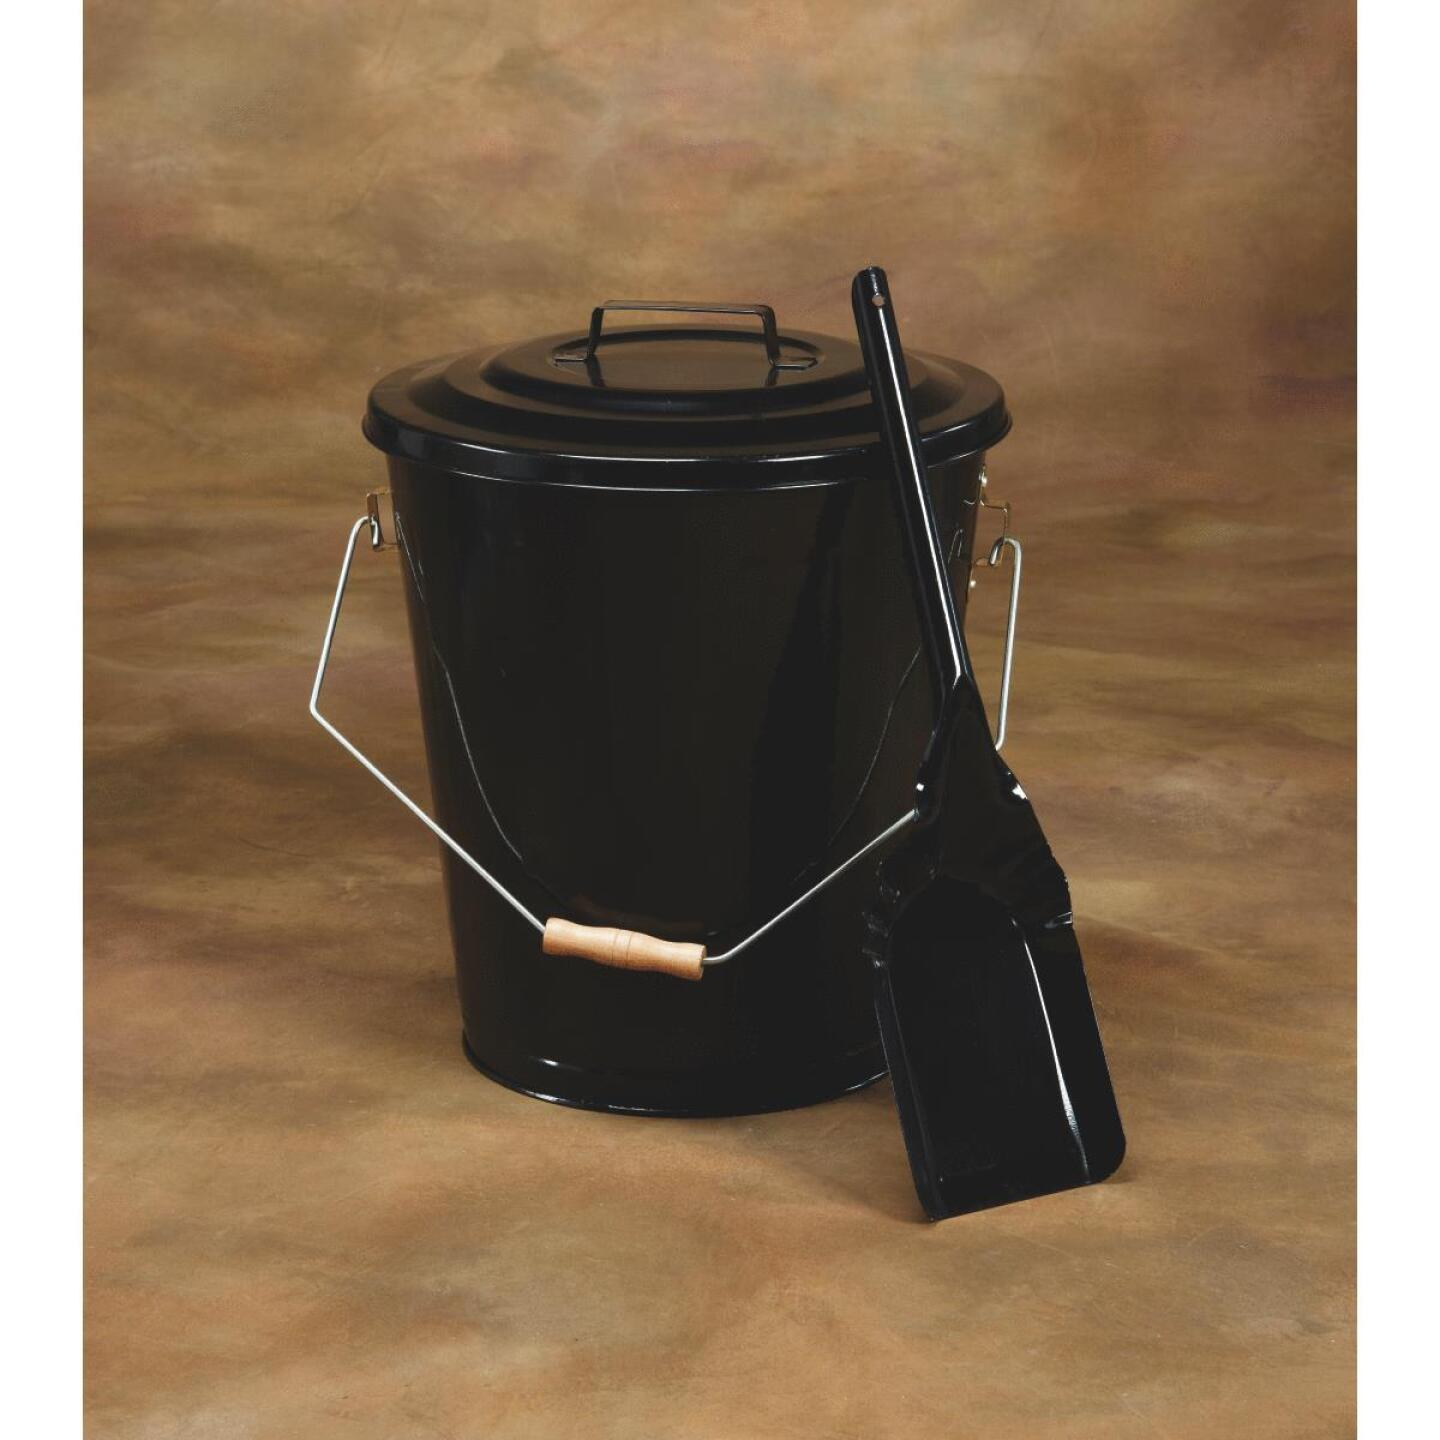 Home Impressions 13 In. W x 14 In. H Black Ash Container & Shovel Image 2